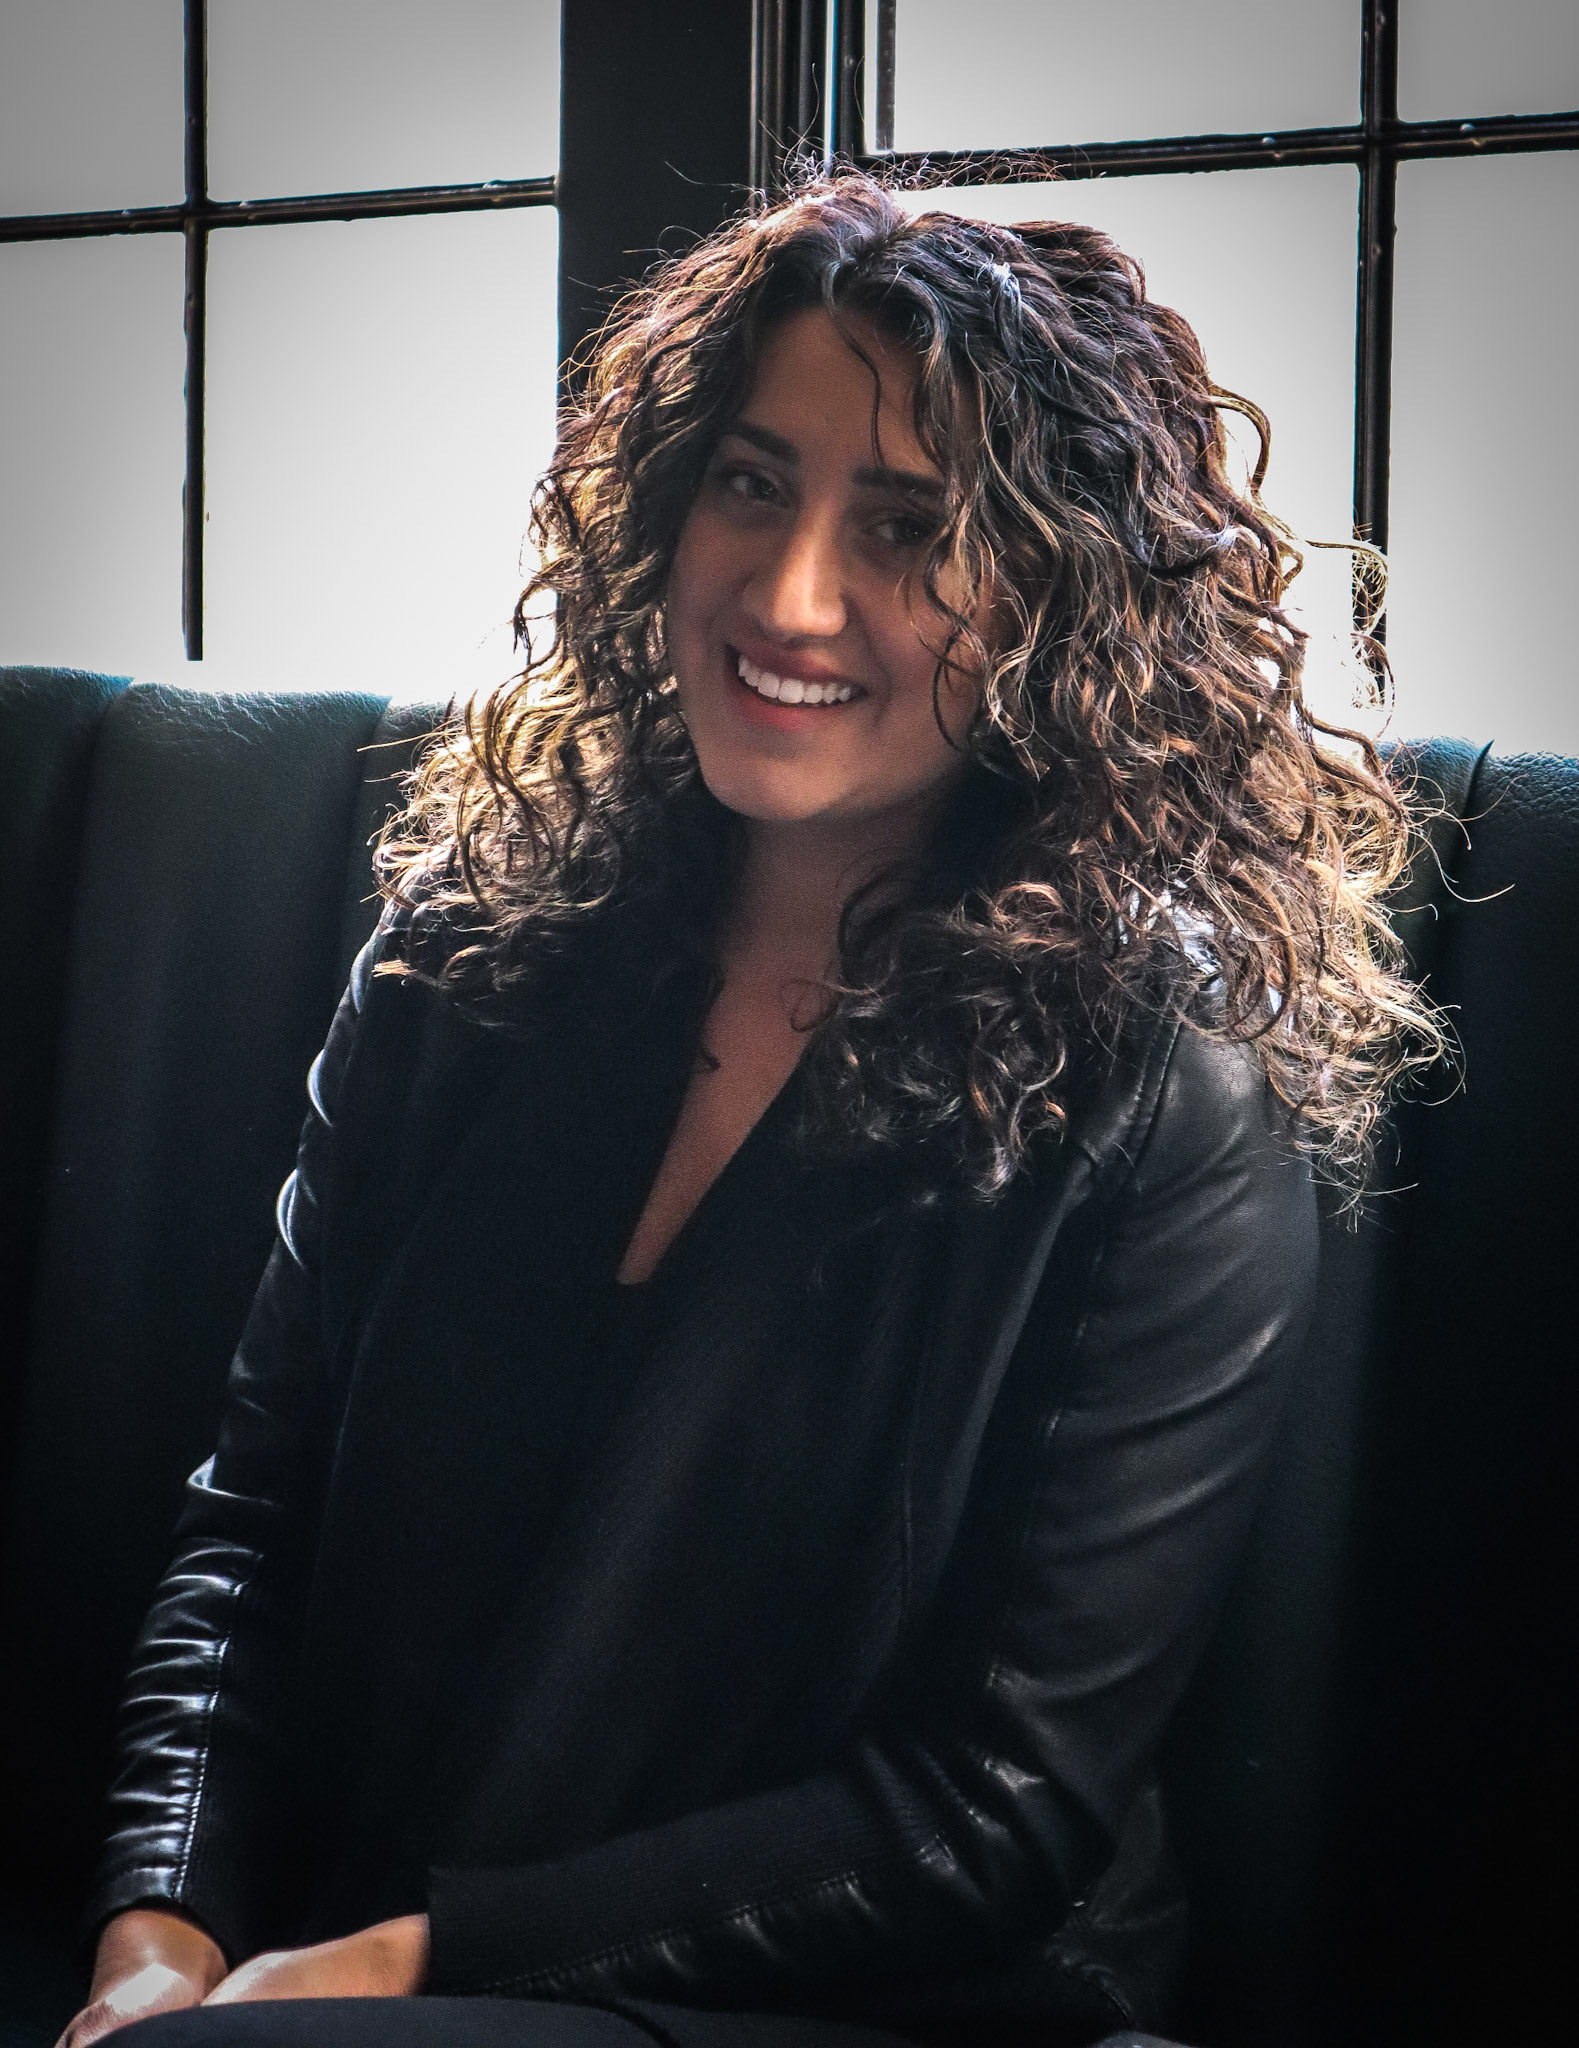 Ashleigh Moraga, Events Director